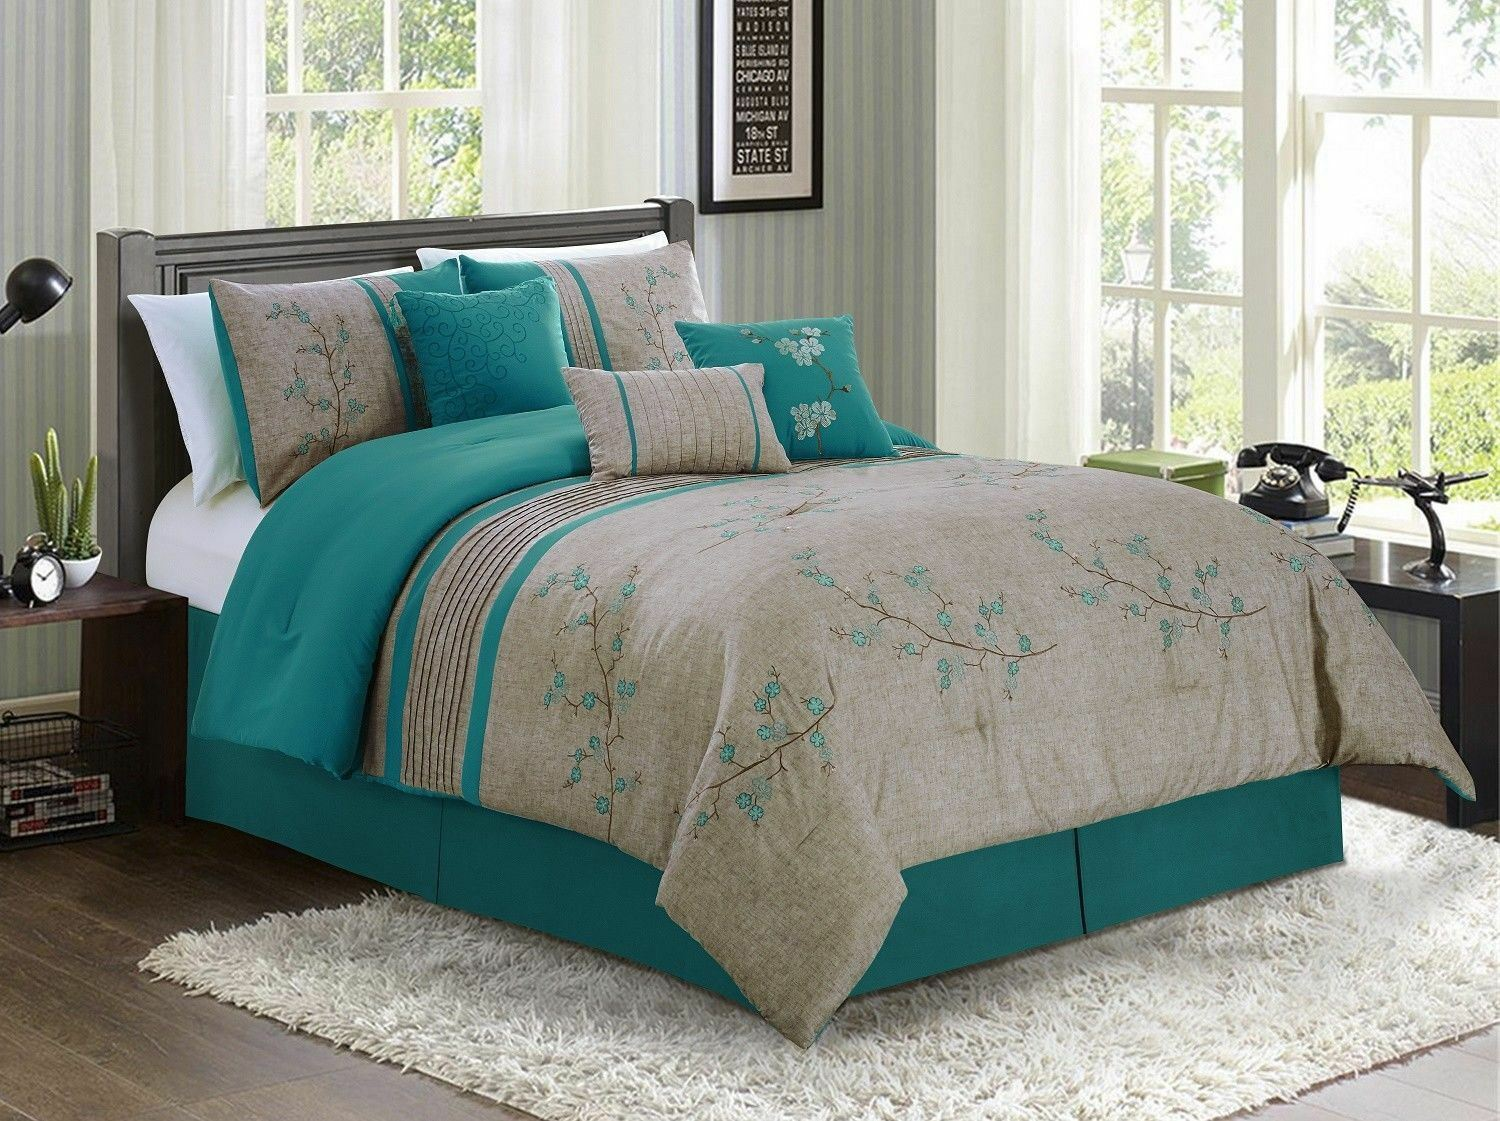 Chezmoi Collection 7-piece Teal Cherry Blossoms Floral Embroidery Comforter Set